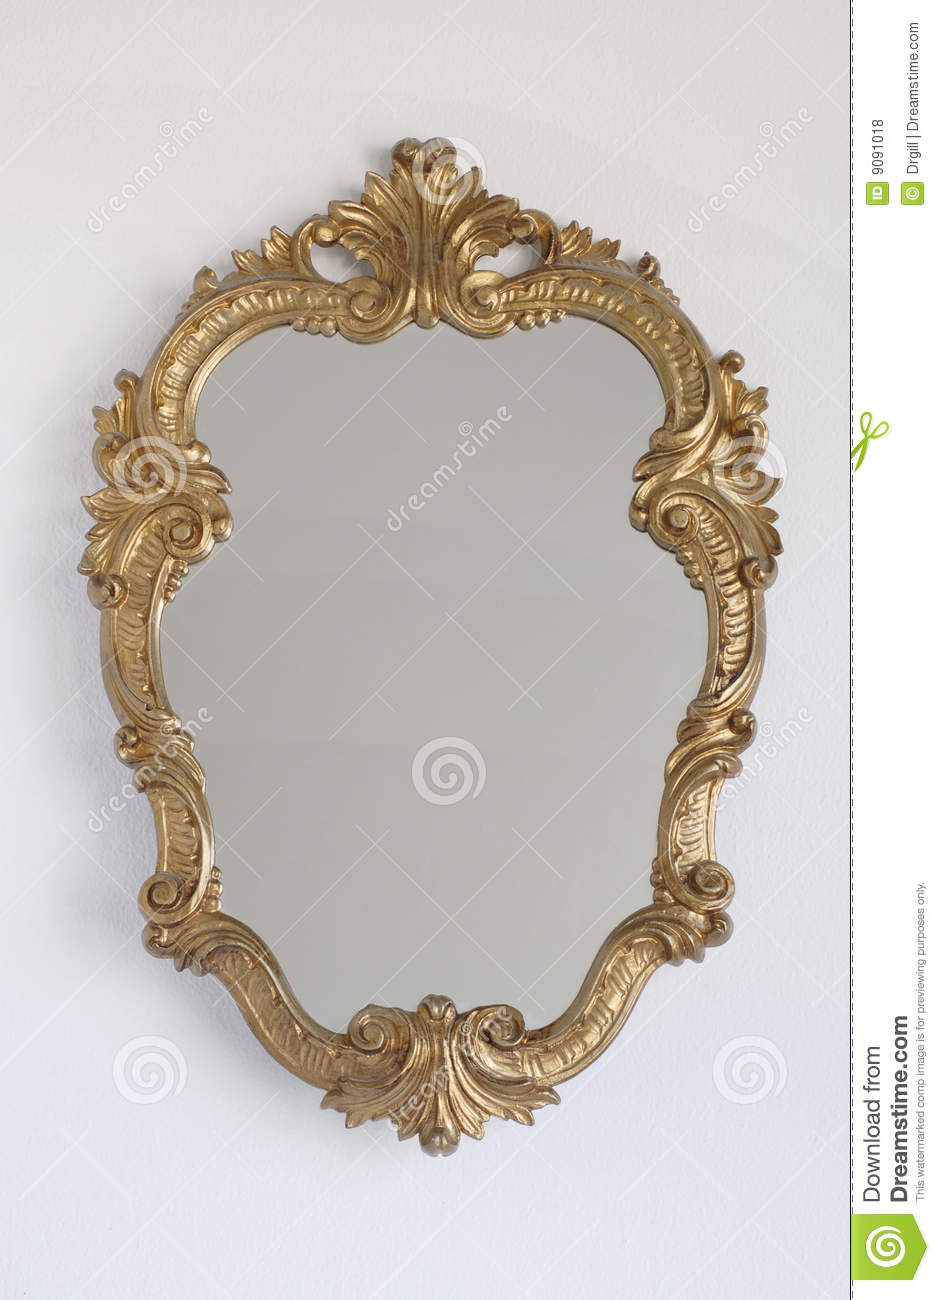 Princess mirror on a wall stock photo image of mirror for Mirror on the wall